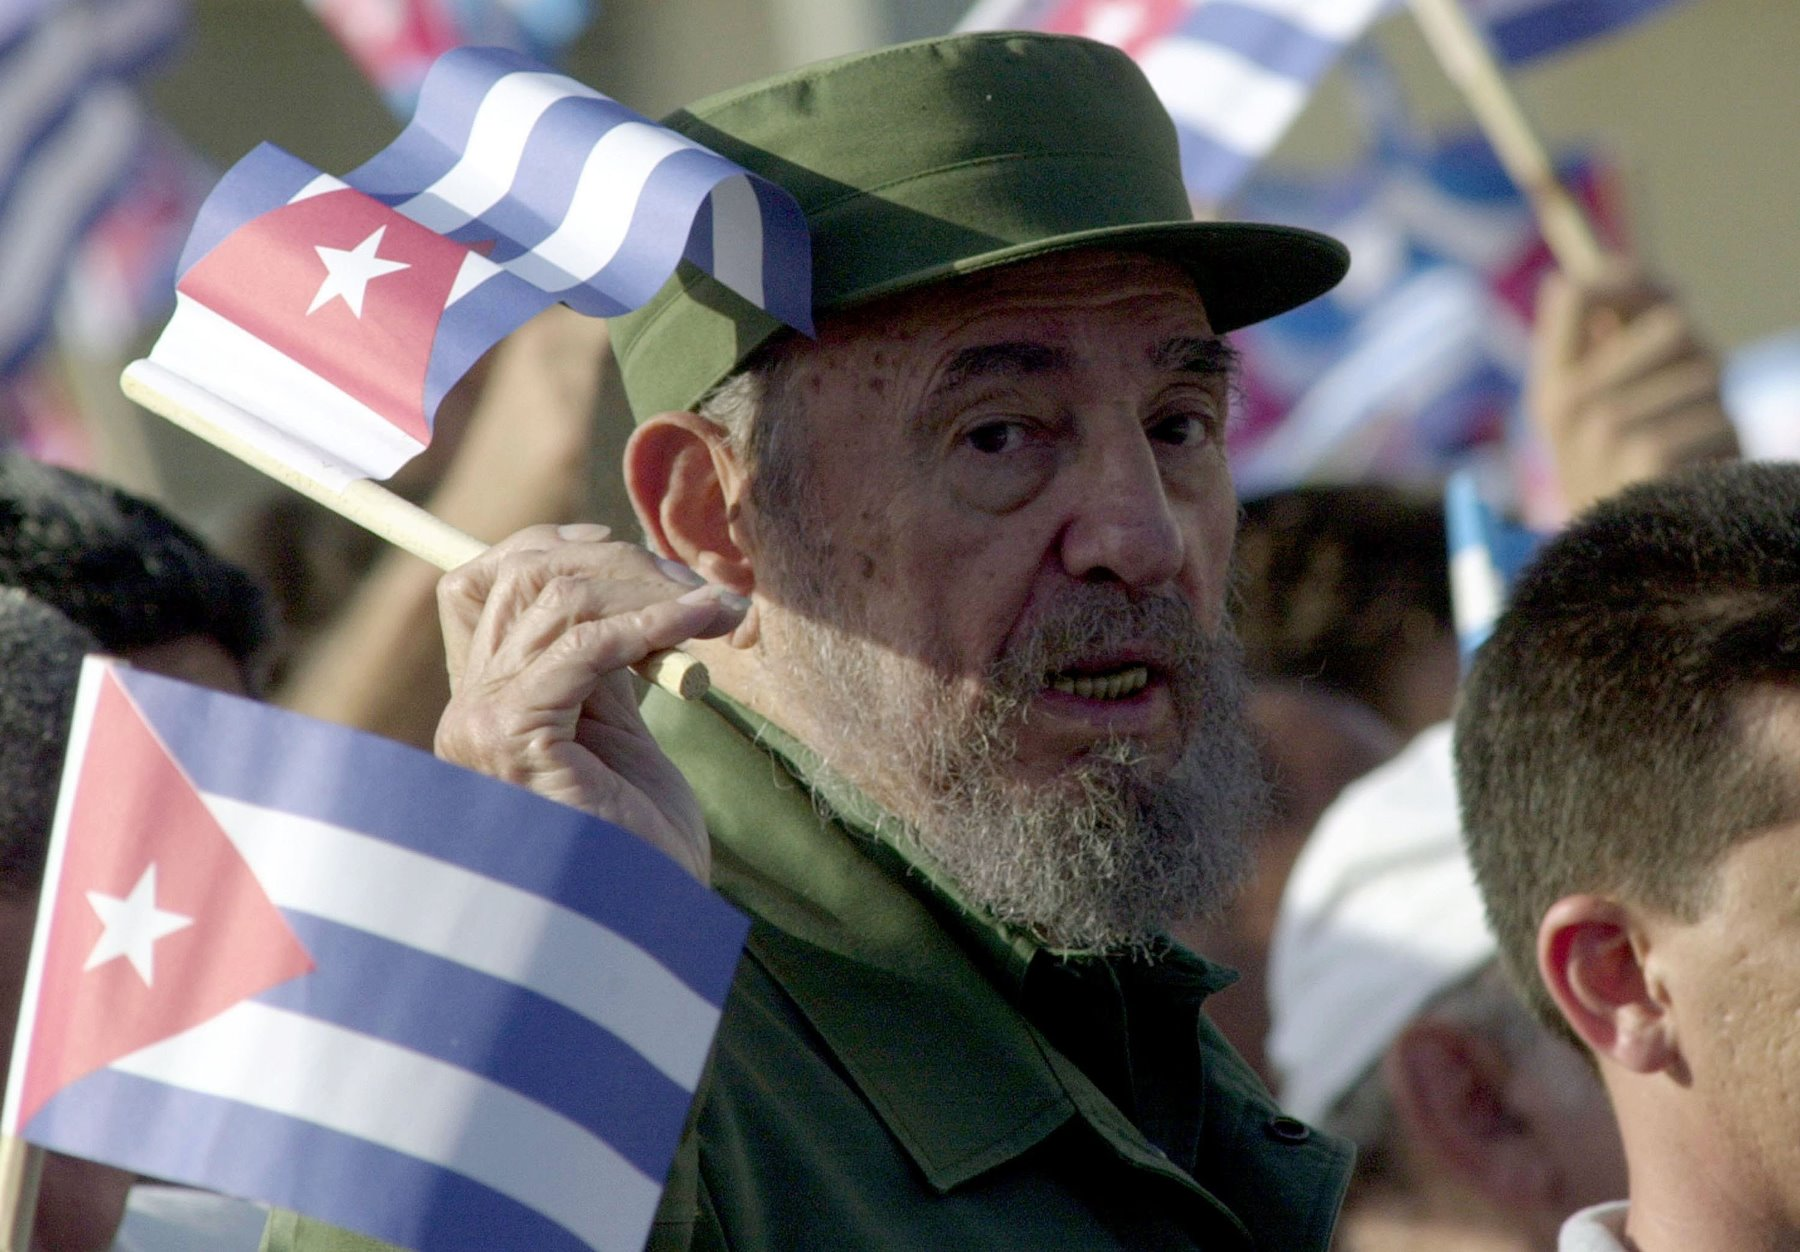 Cuban President Fidel Castro waves a Cuban flag during a demonstration outside the U.S. Interest Section June 21, 2004, in Havana, Cuba. The former leader of Cuba died Friday at the age of 90.  (Getty Images)